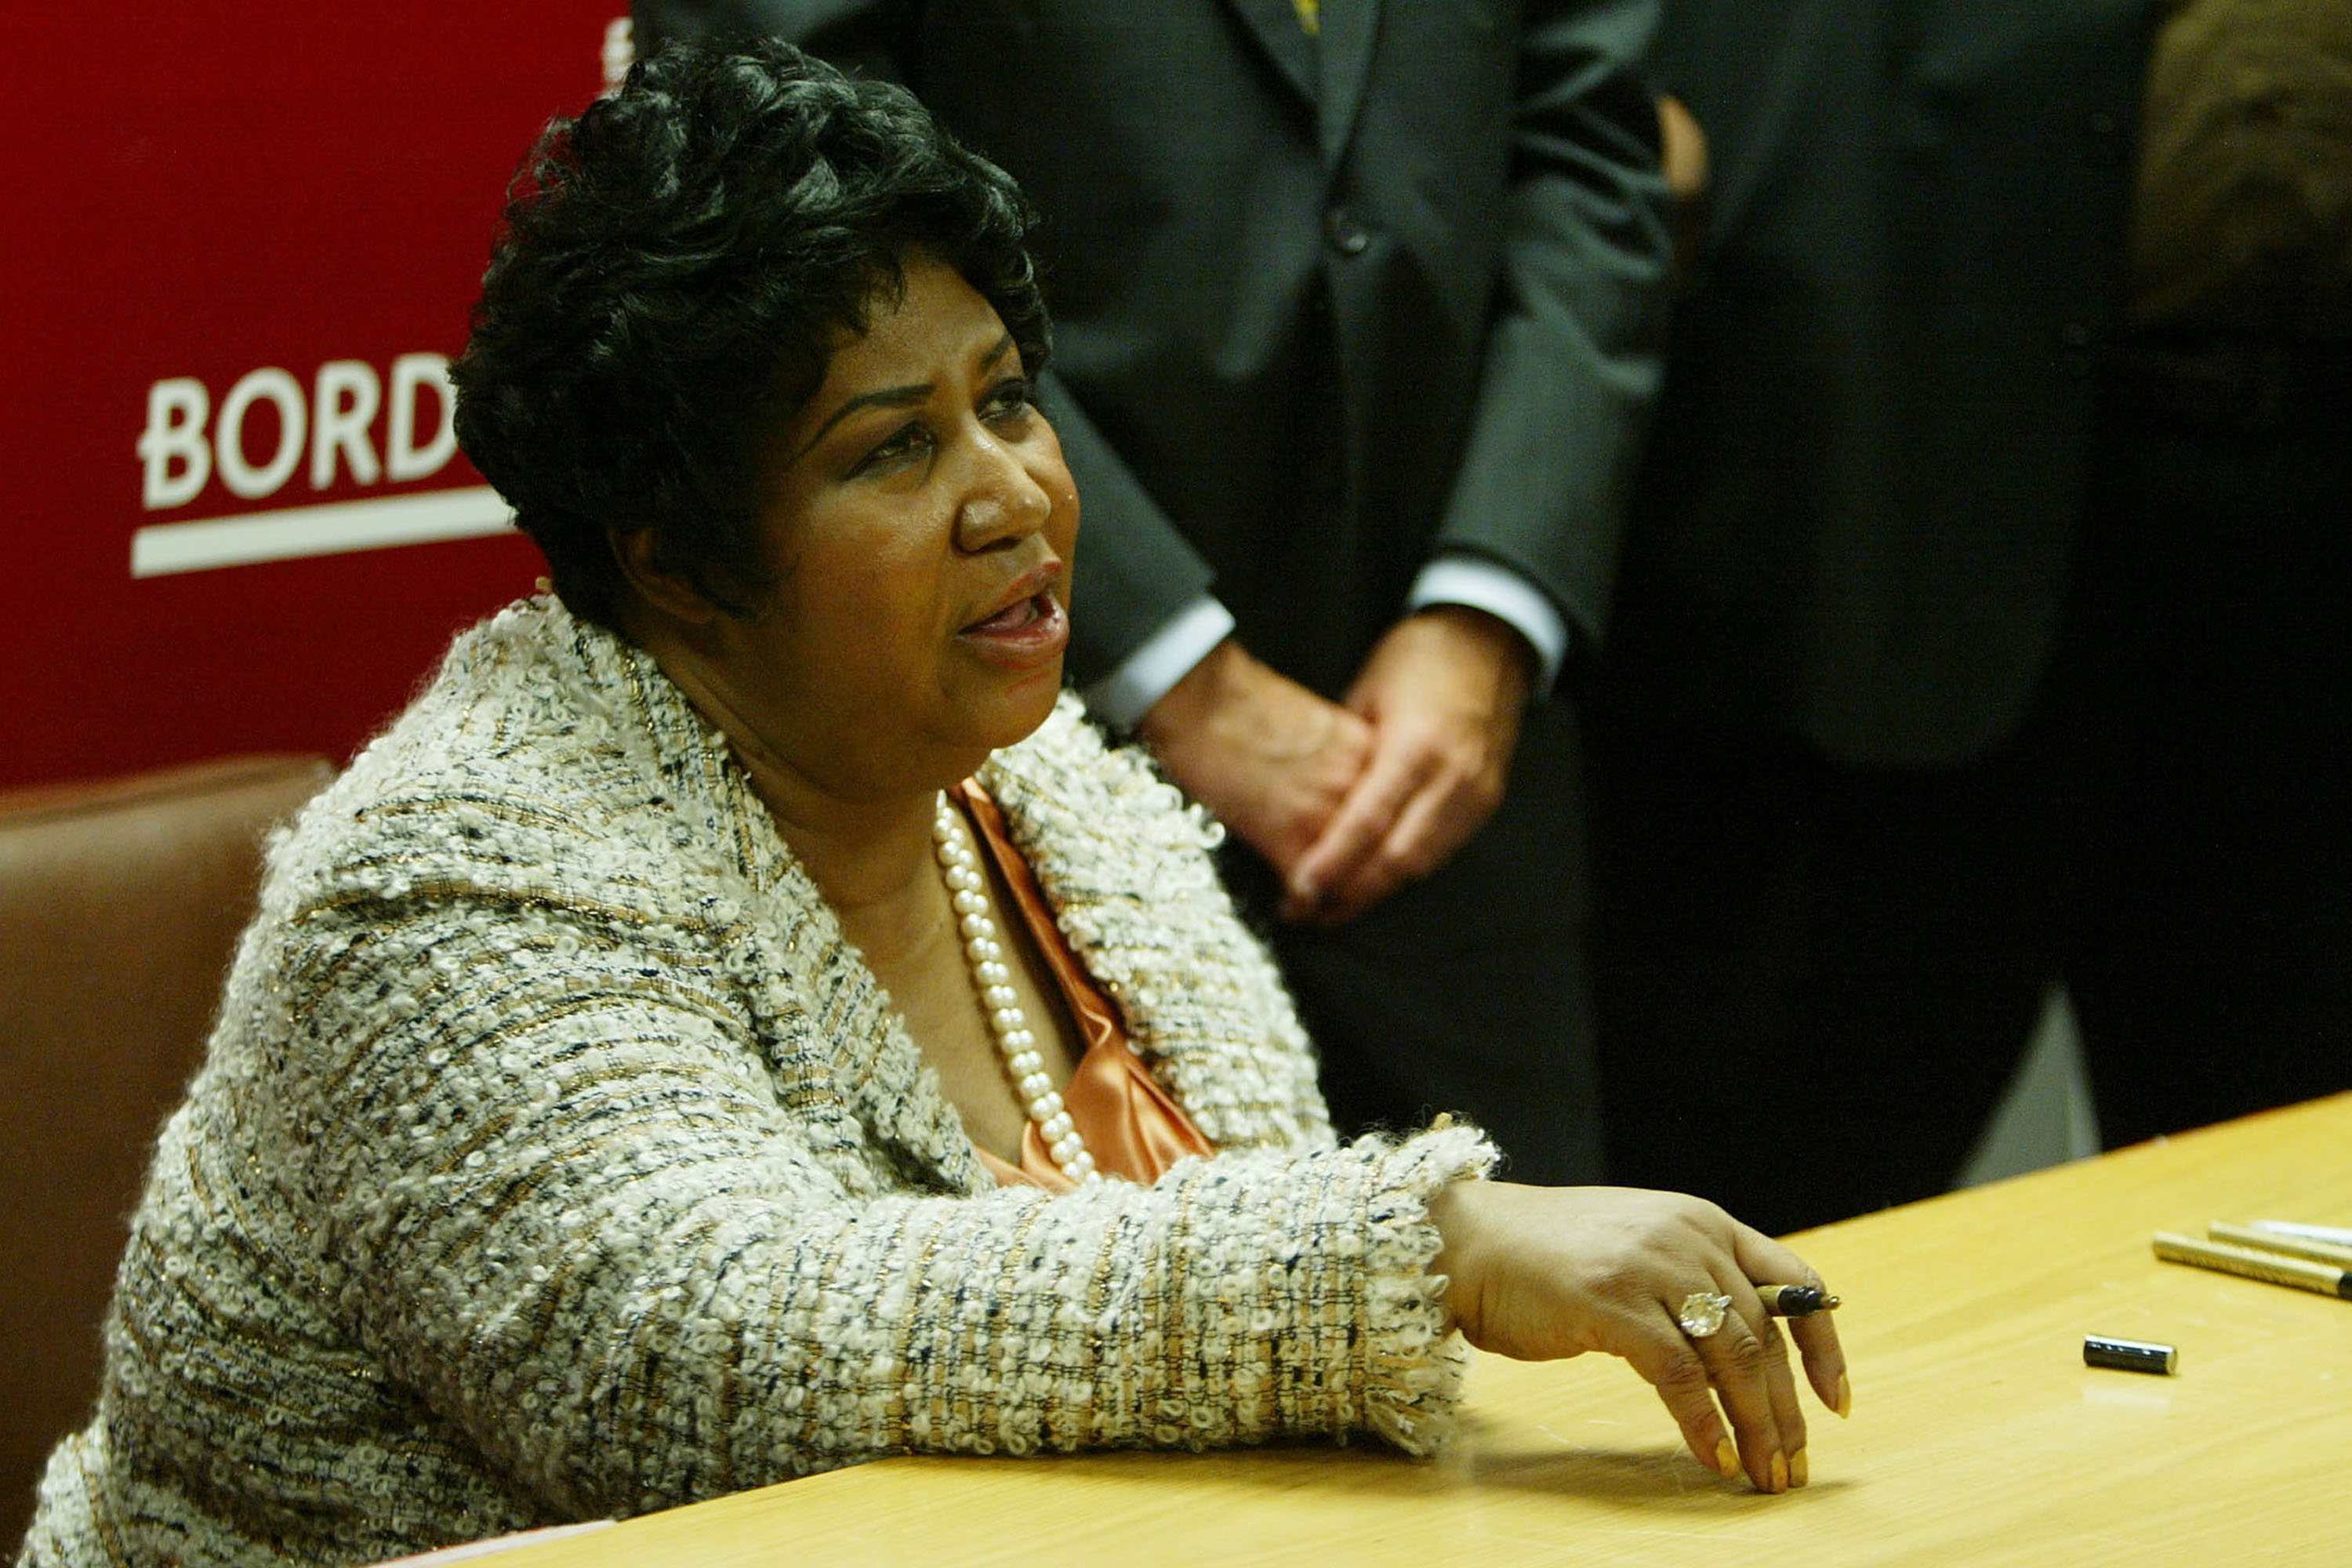 Aretha Franklin signs copies of her first Christmas CD 'This Christmas Aretha' at Borders in Washington DC on Oct. 20 2008. (Credit: Carrie Devorah / WENN)